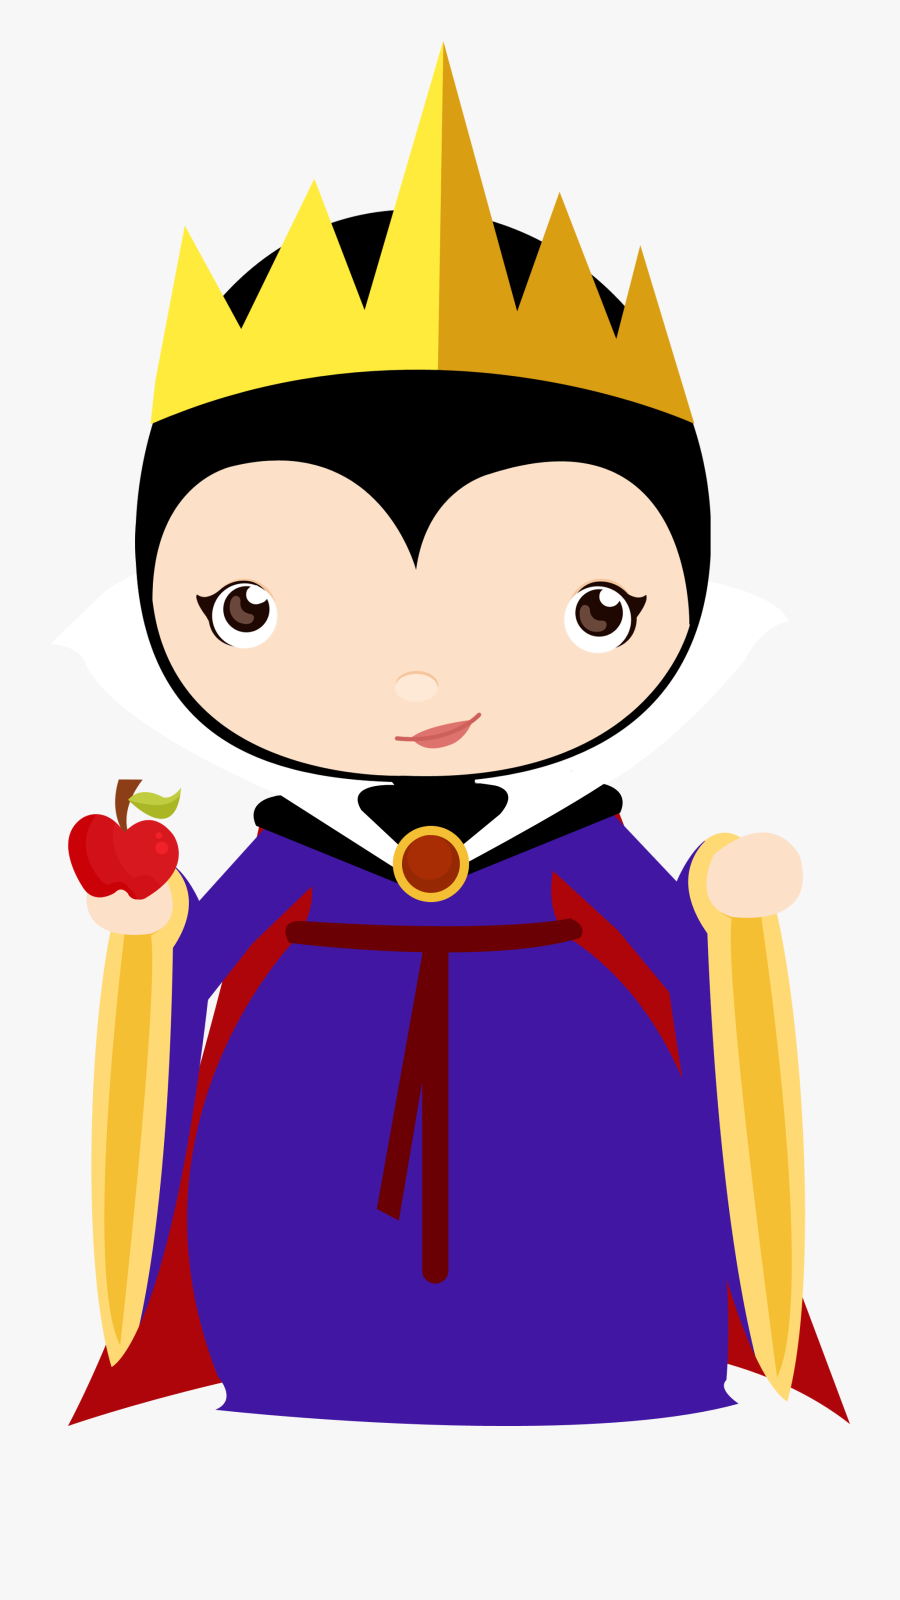 Pin By Angel Dias On Moldes Snow White, Clip Art - Baby Disney Villains Svg, Transparent Clipart